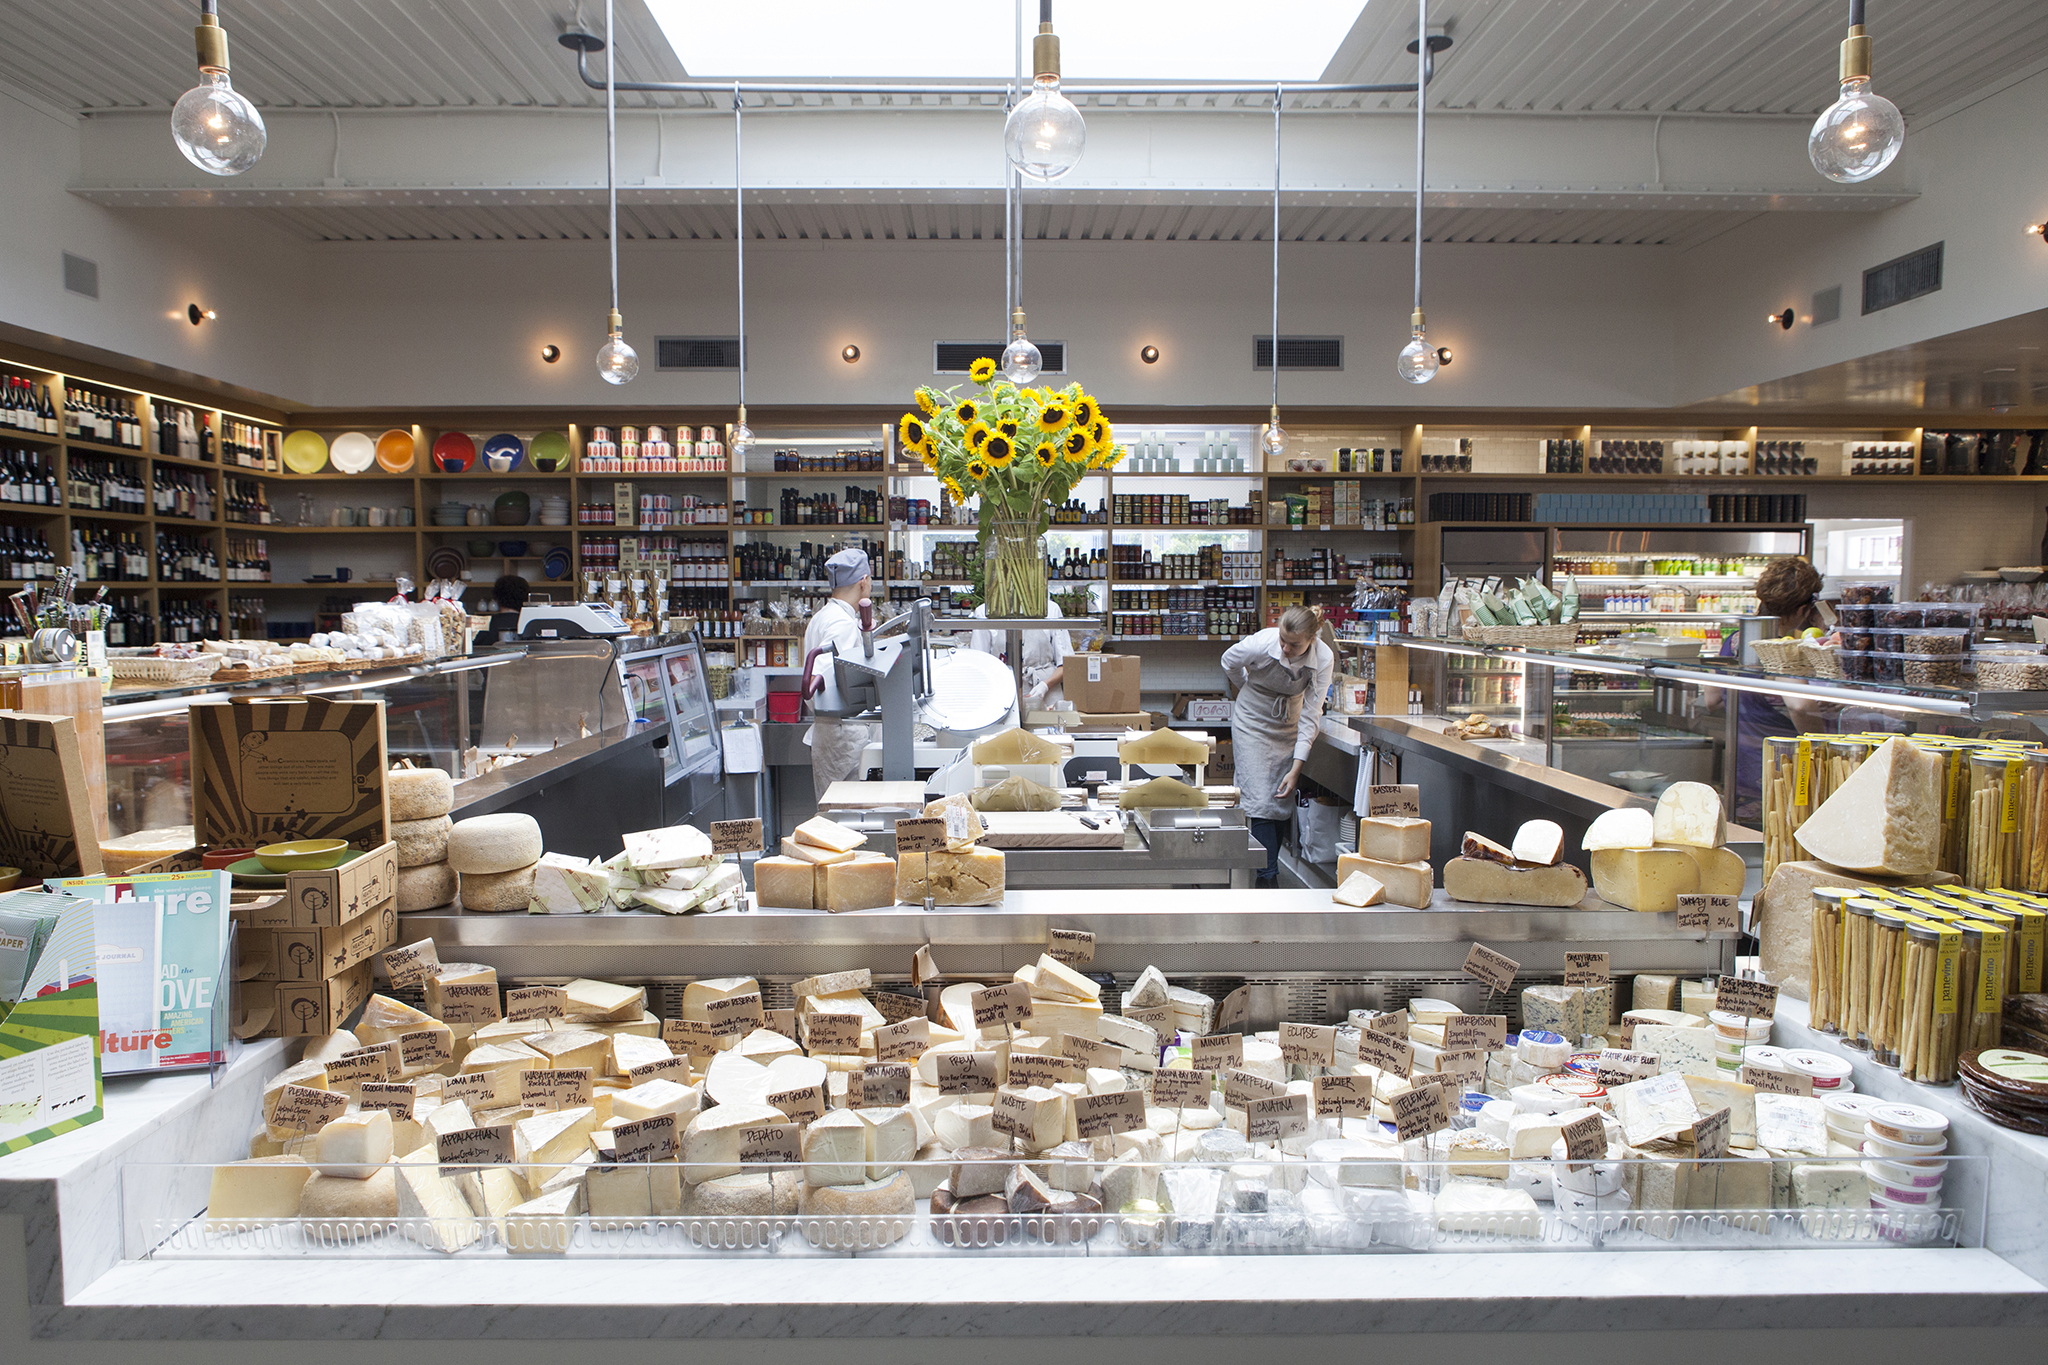 Best gourmet markets for picnics